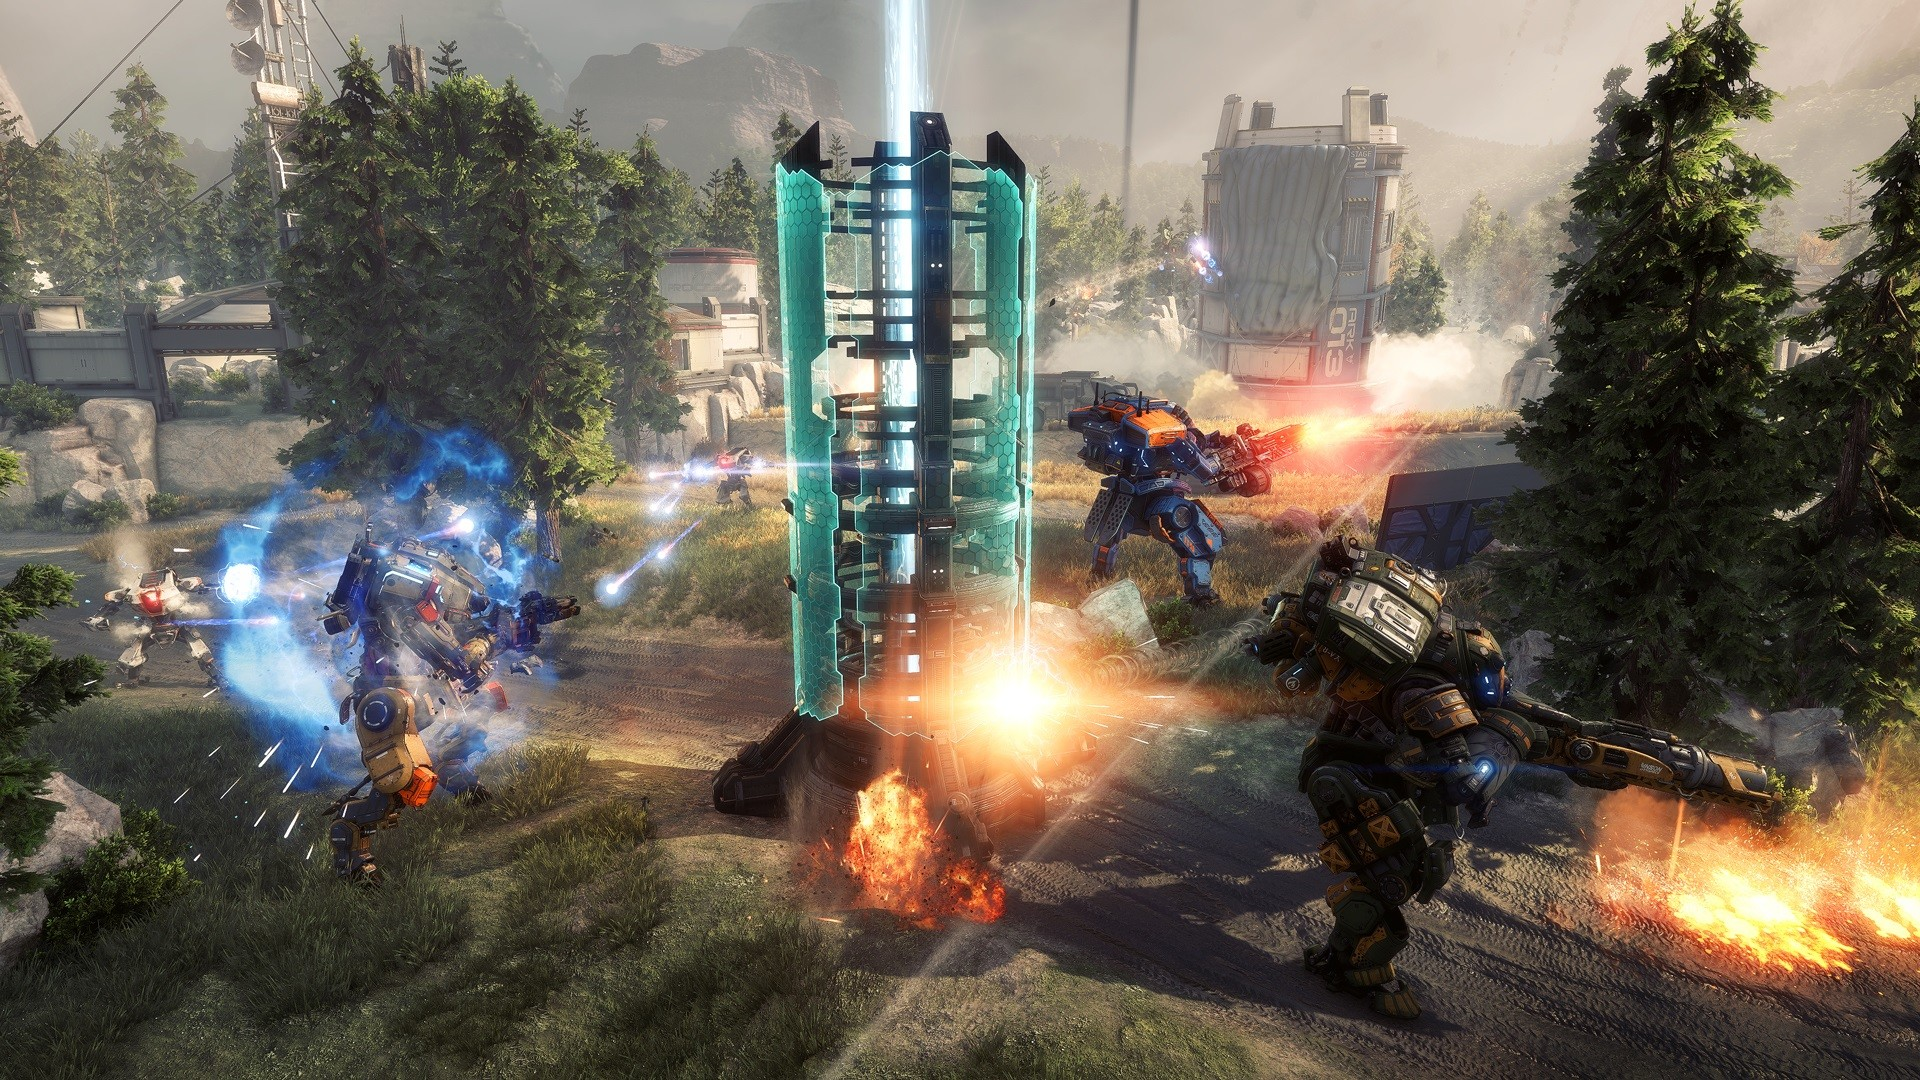 Titanfall 2 gets co-op mode and free trial next week